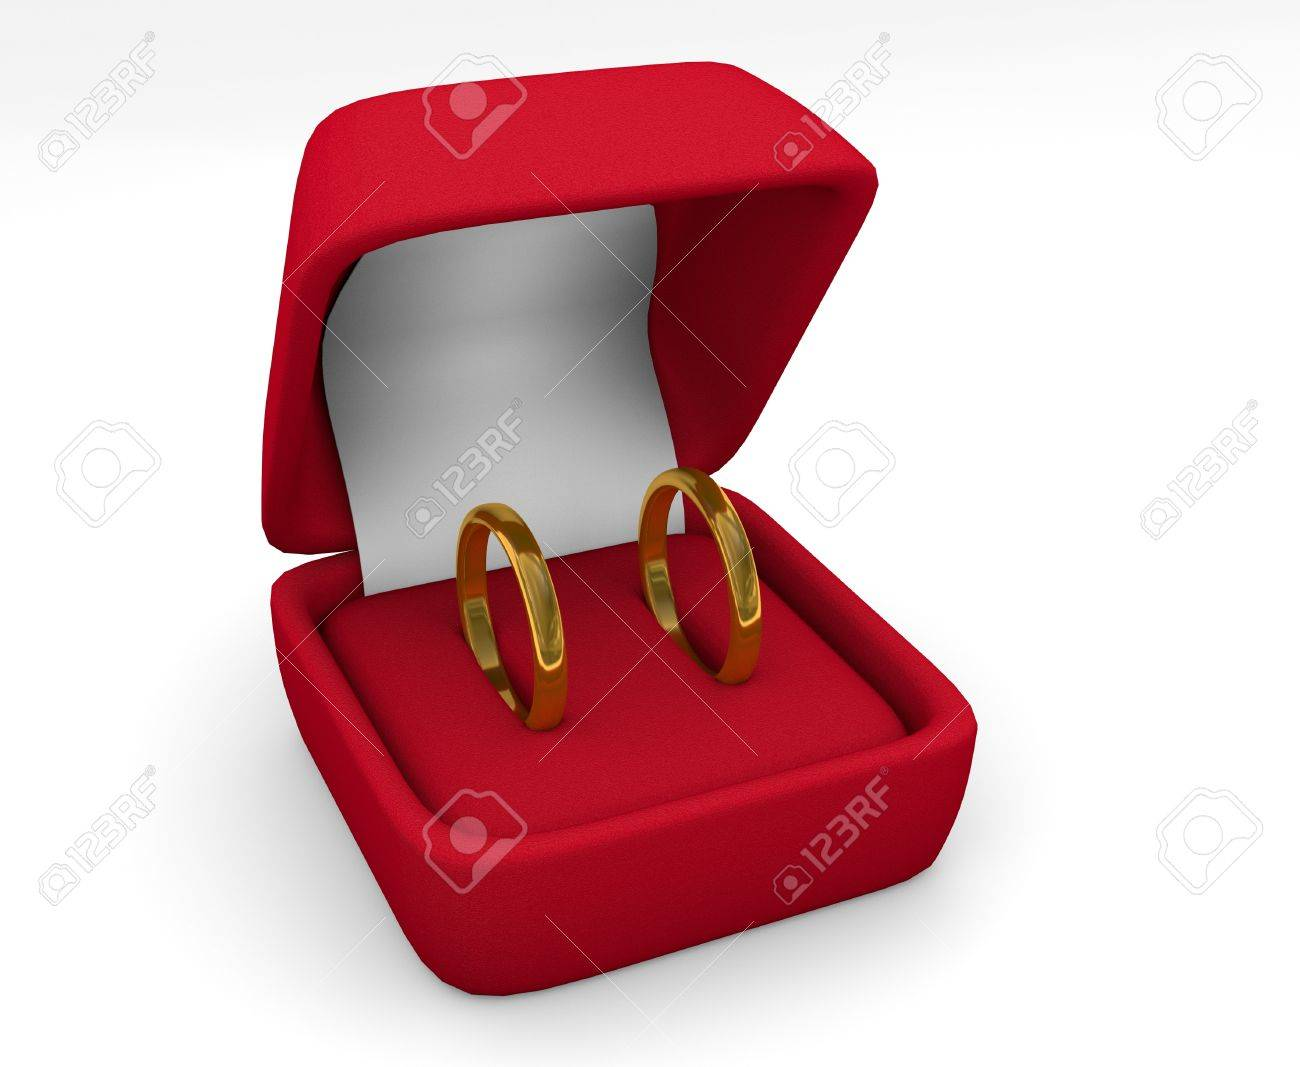 Two Wedding Ring In Box On White Background Stock Photo, Picture And ...